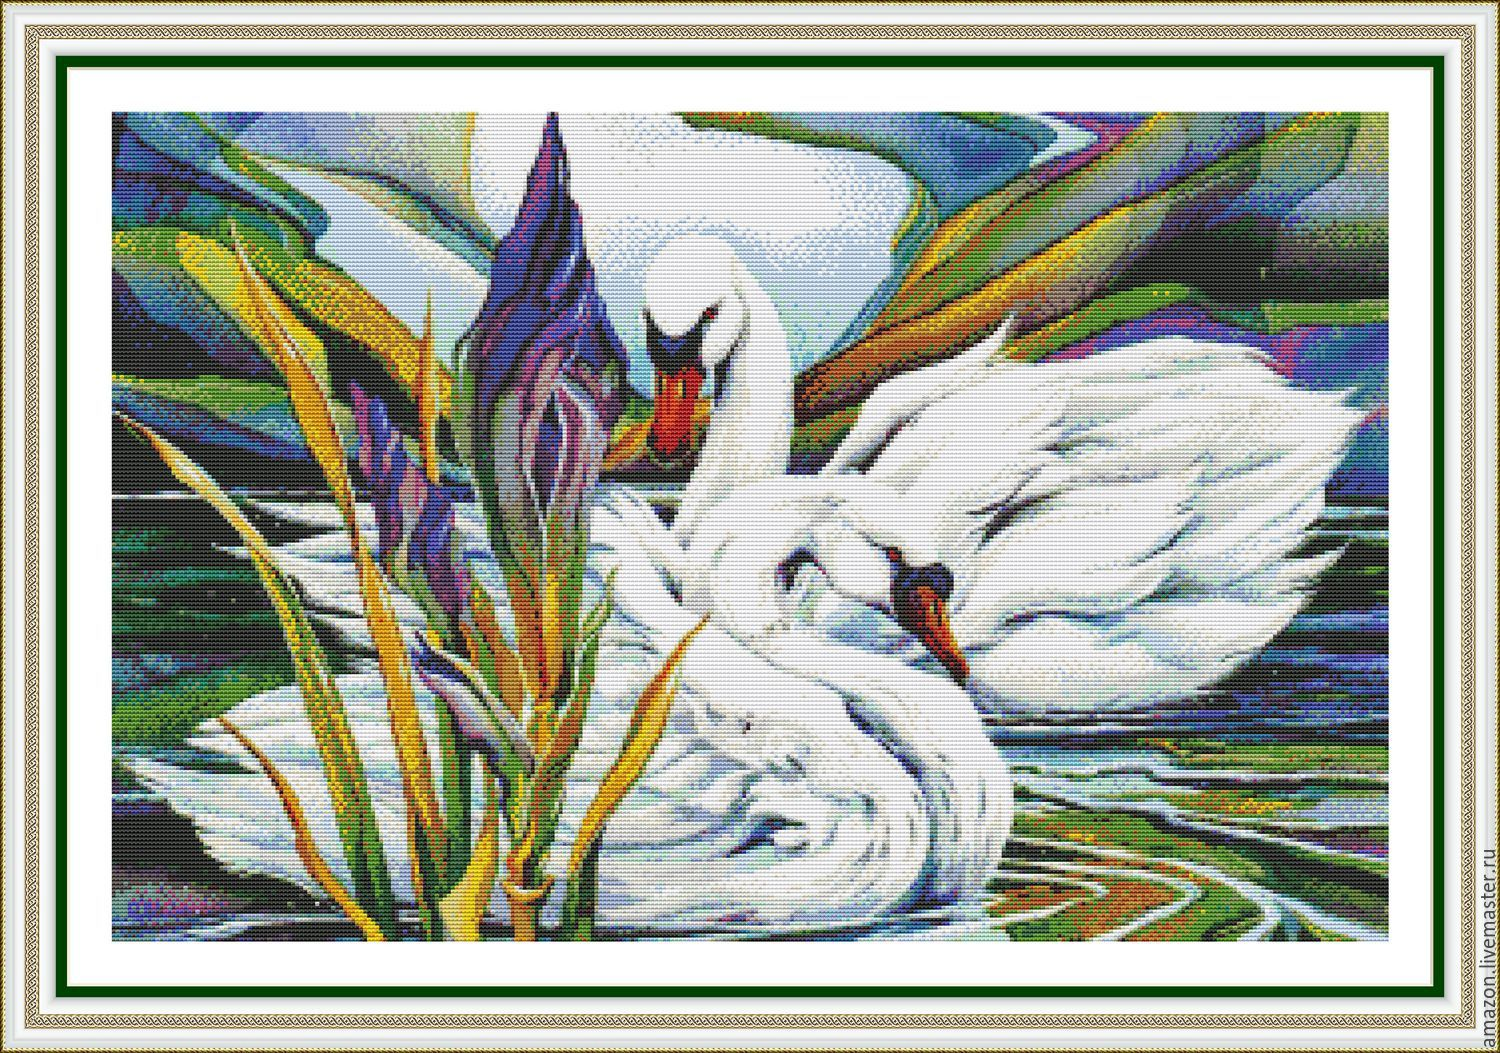 pair of SWANS – to family happiness and fidelity.